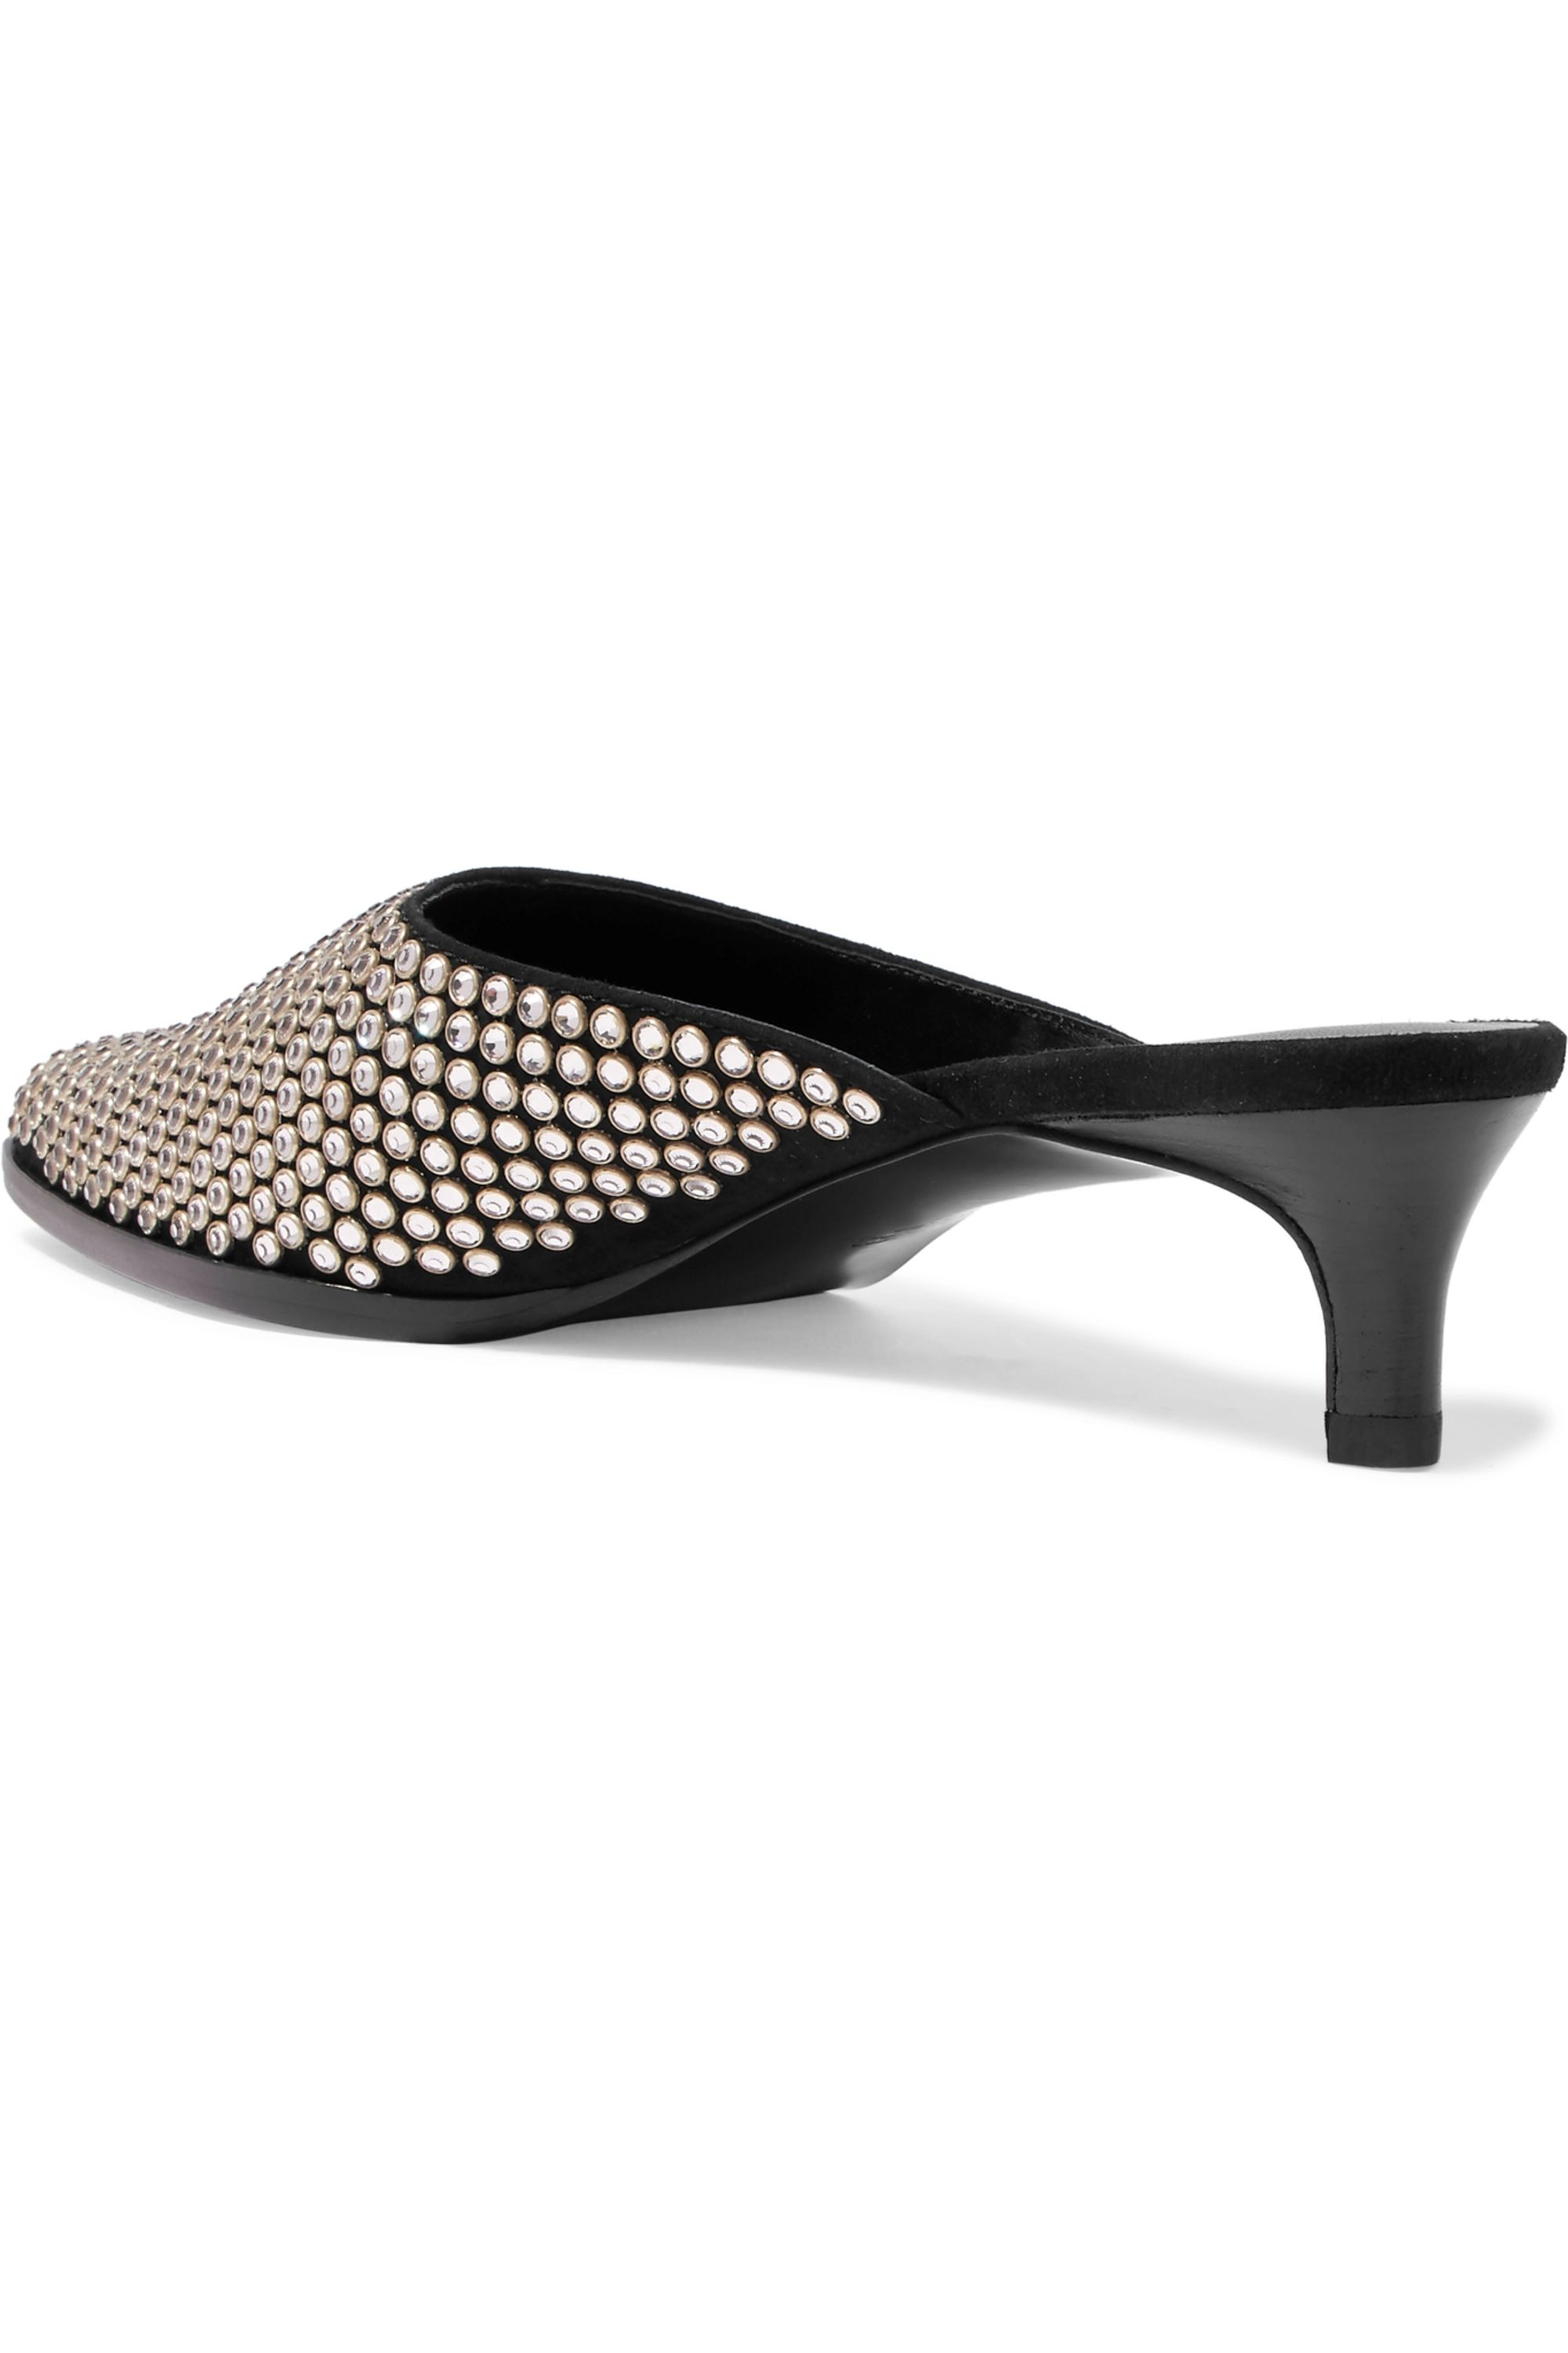 3.1 Phillip Lim Agatha crystal-embellished suede mules